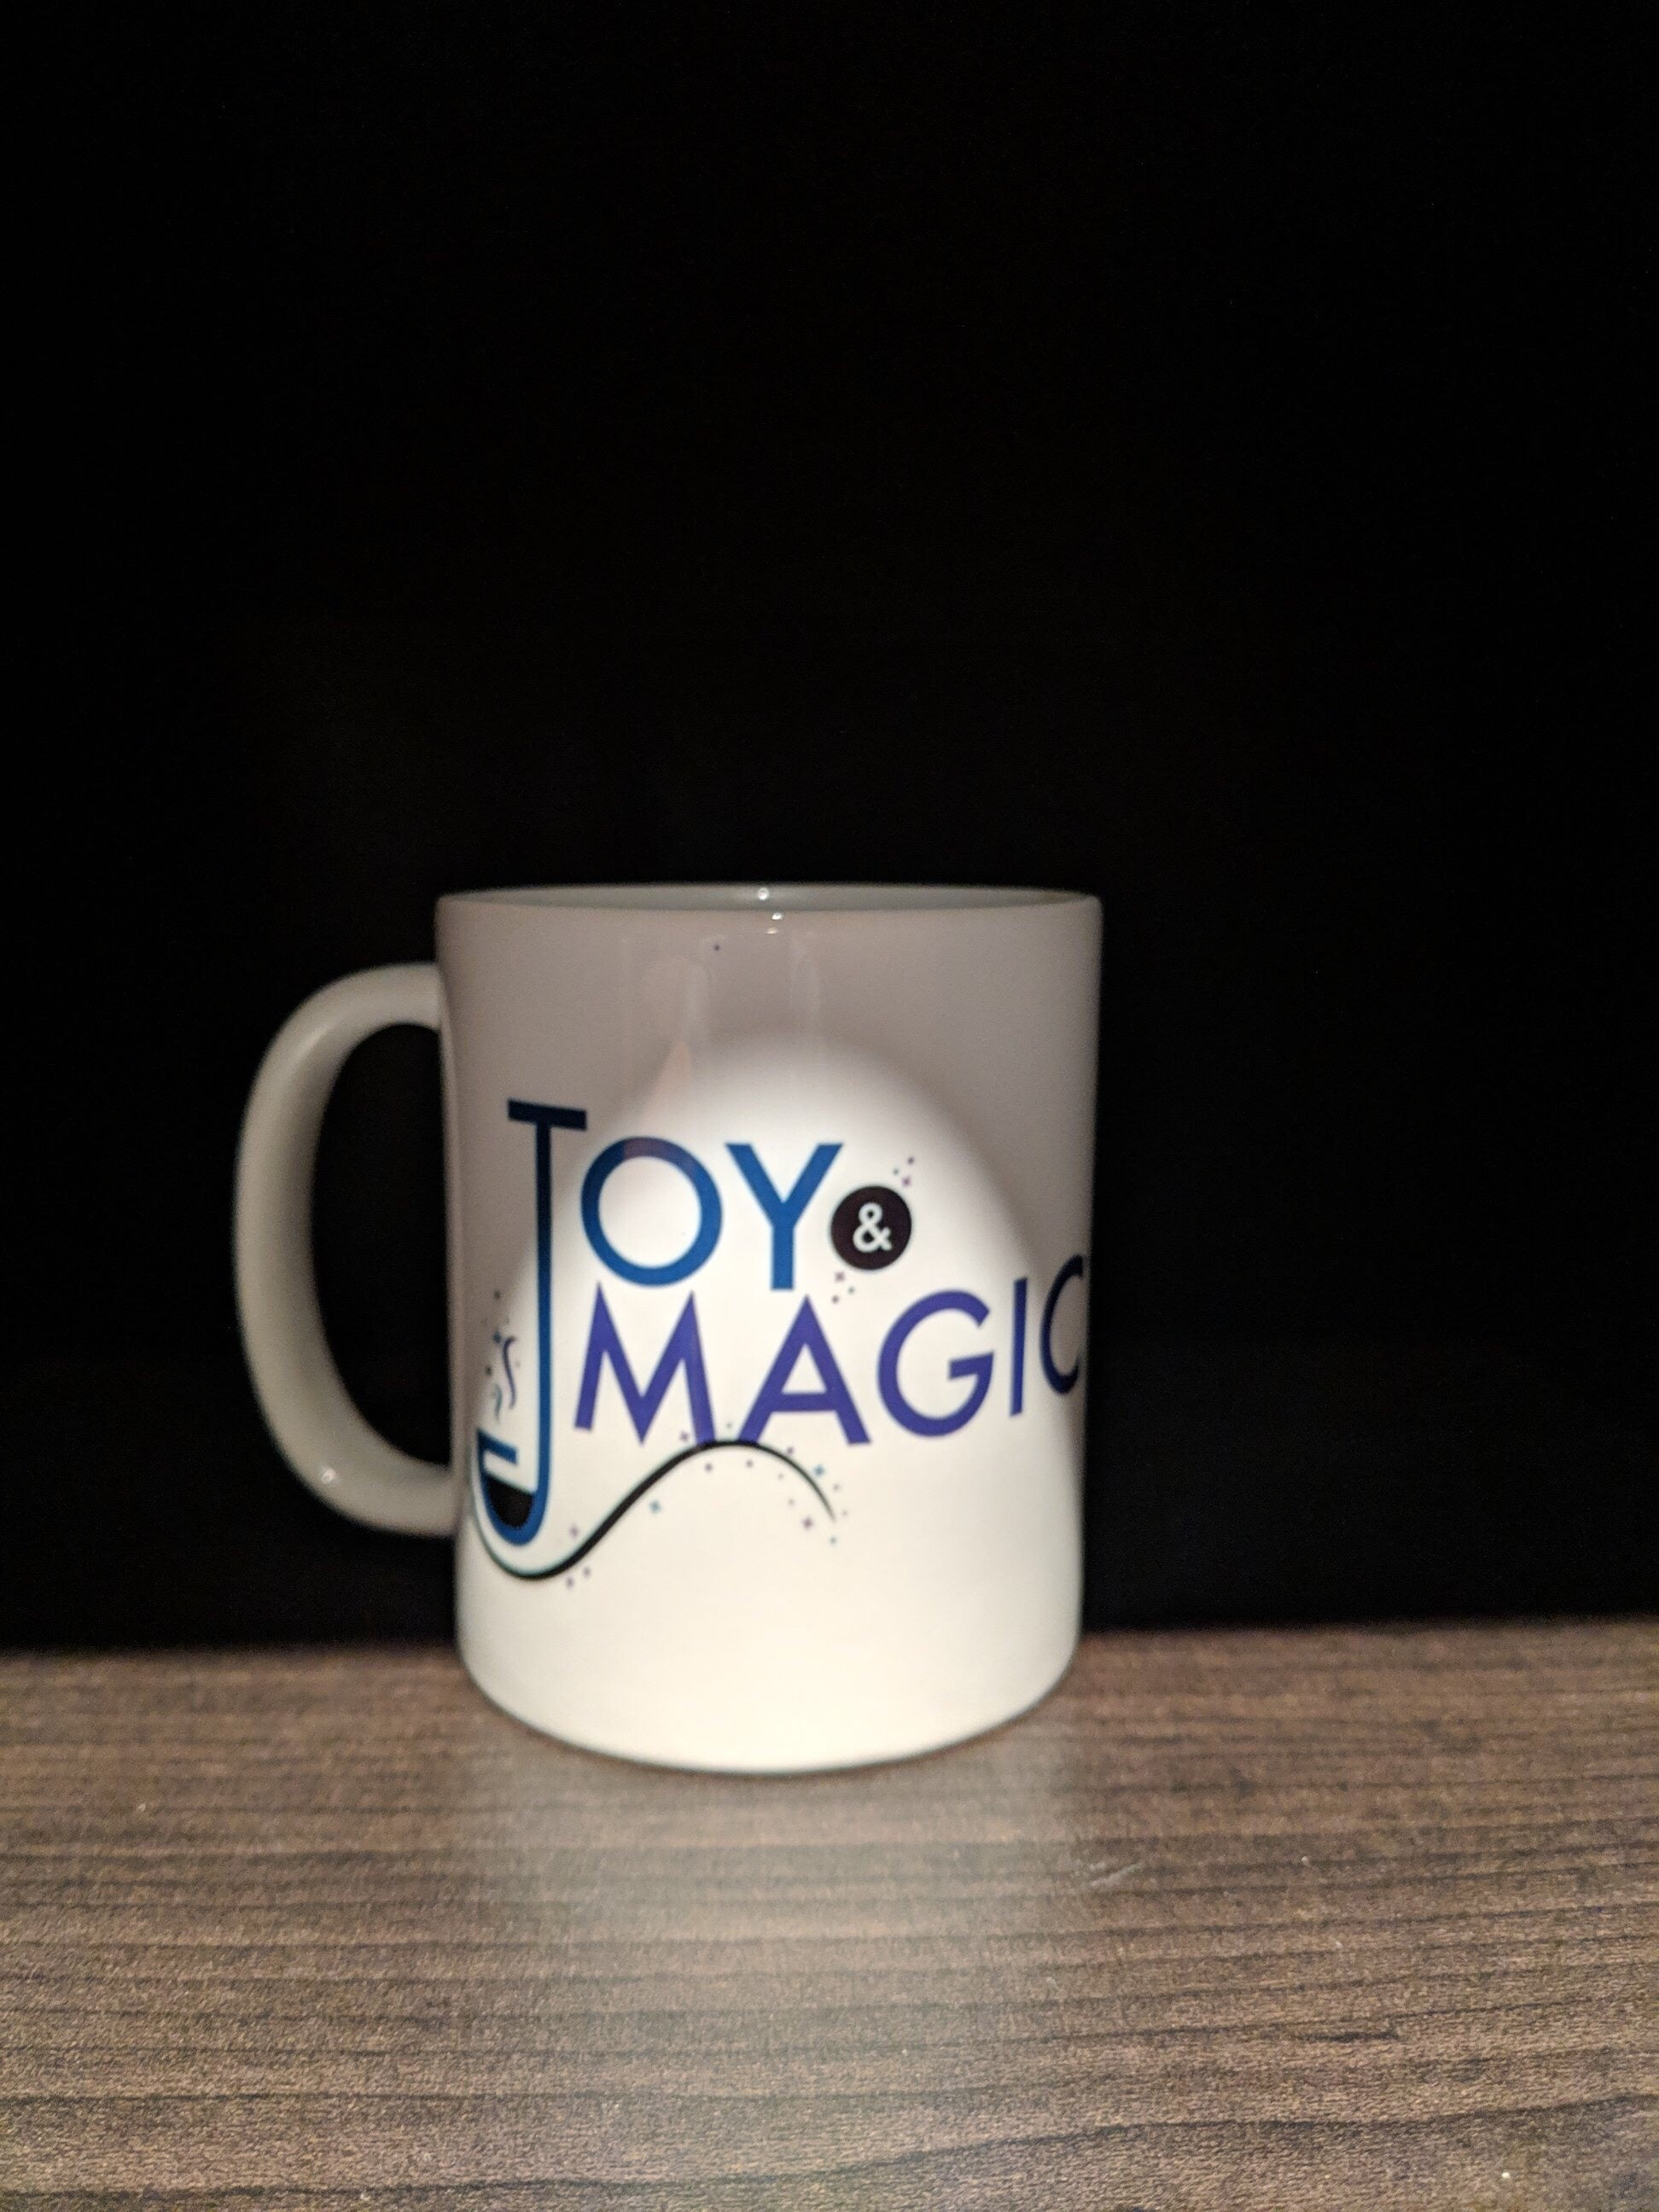 The Joy and Magic Brand Mug